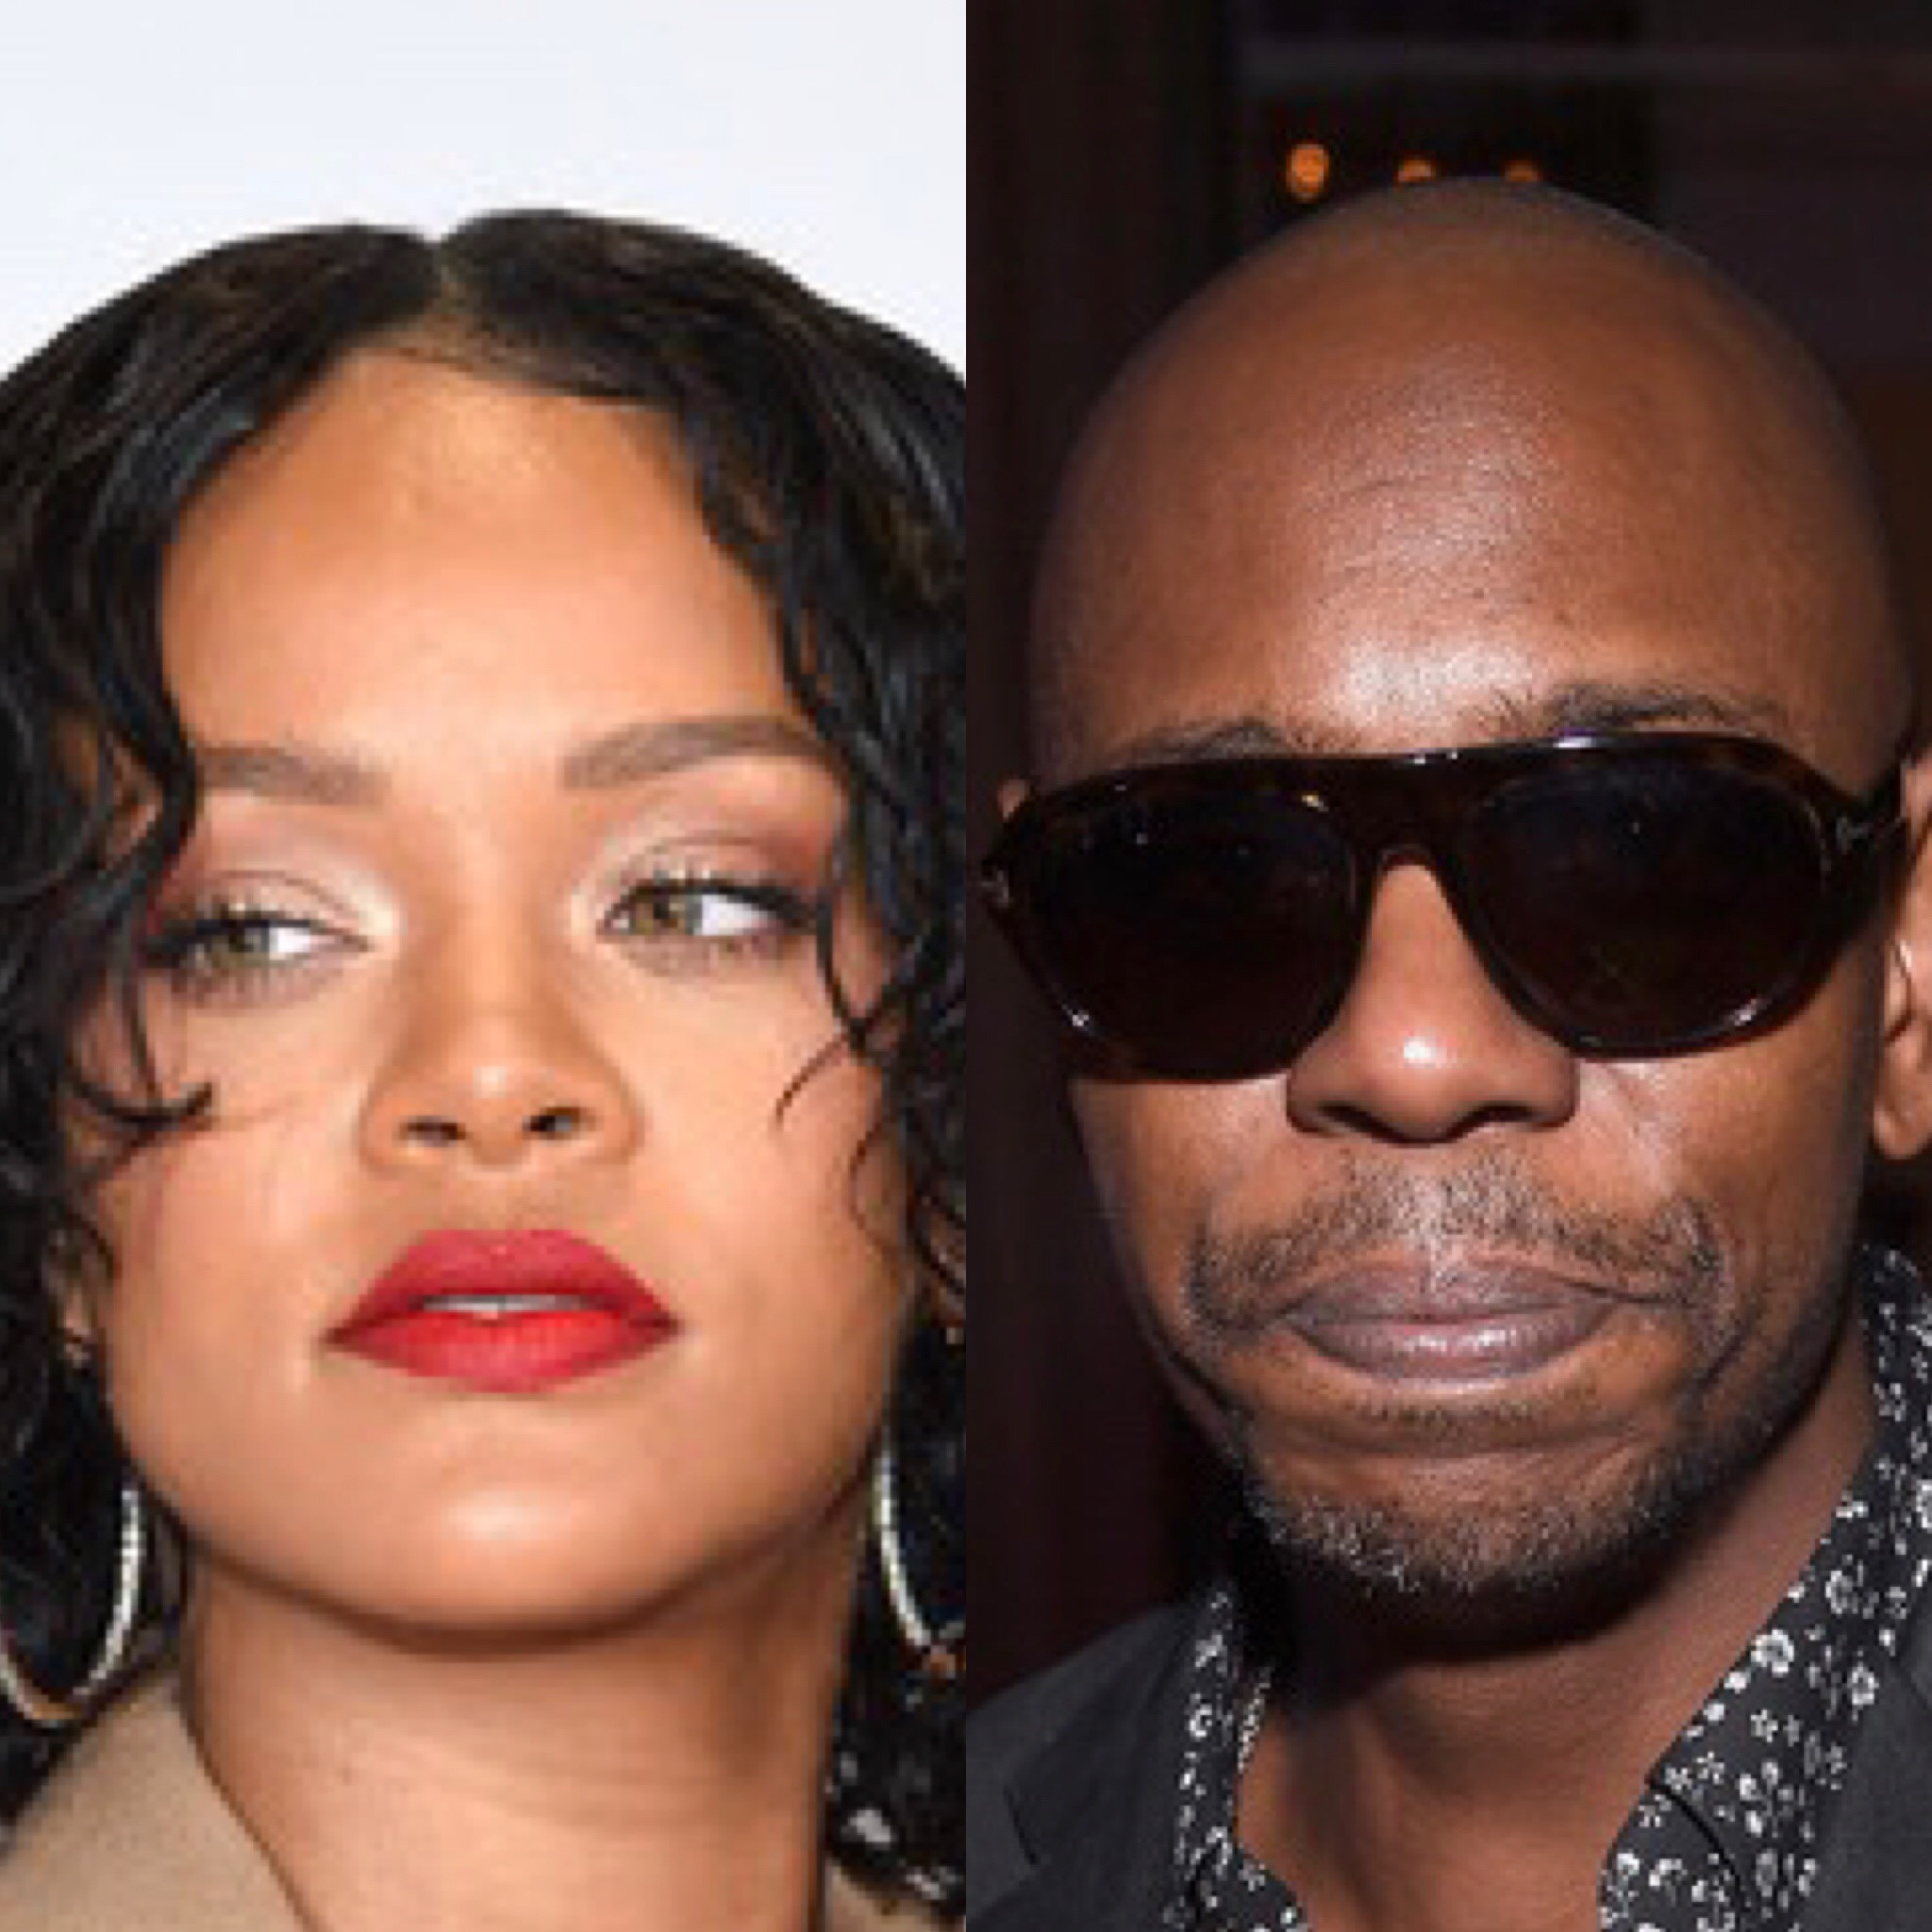 Rihanna and Dave Chappelle